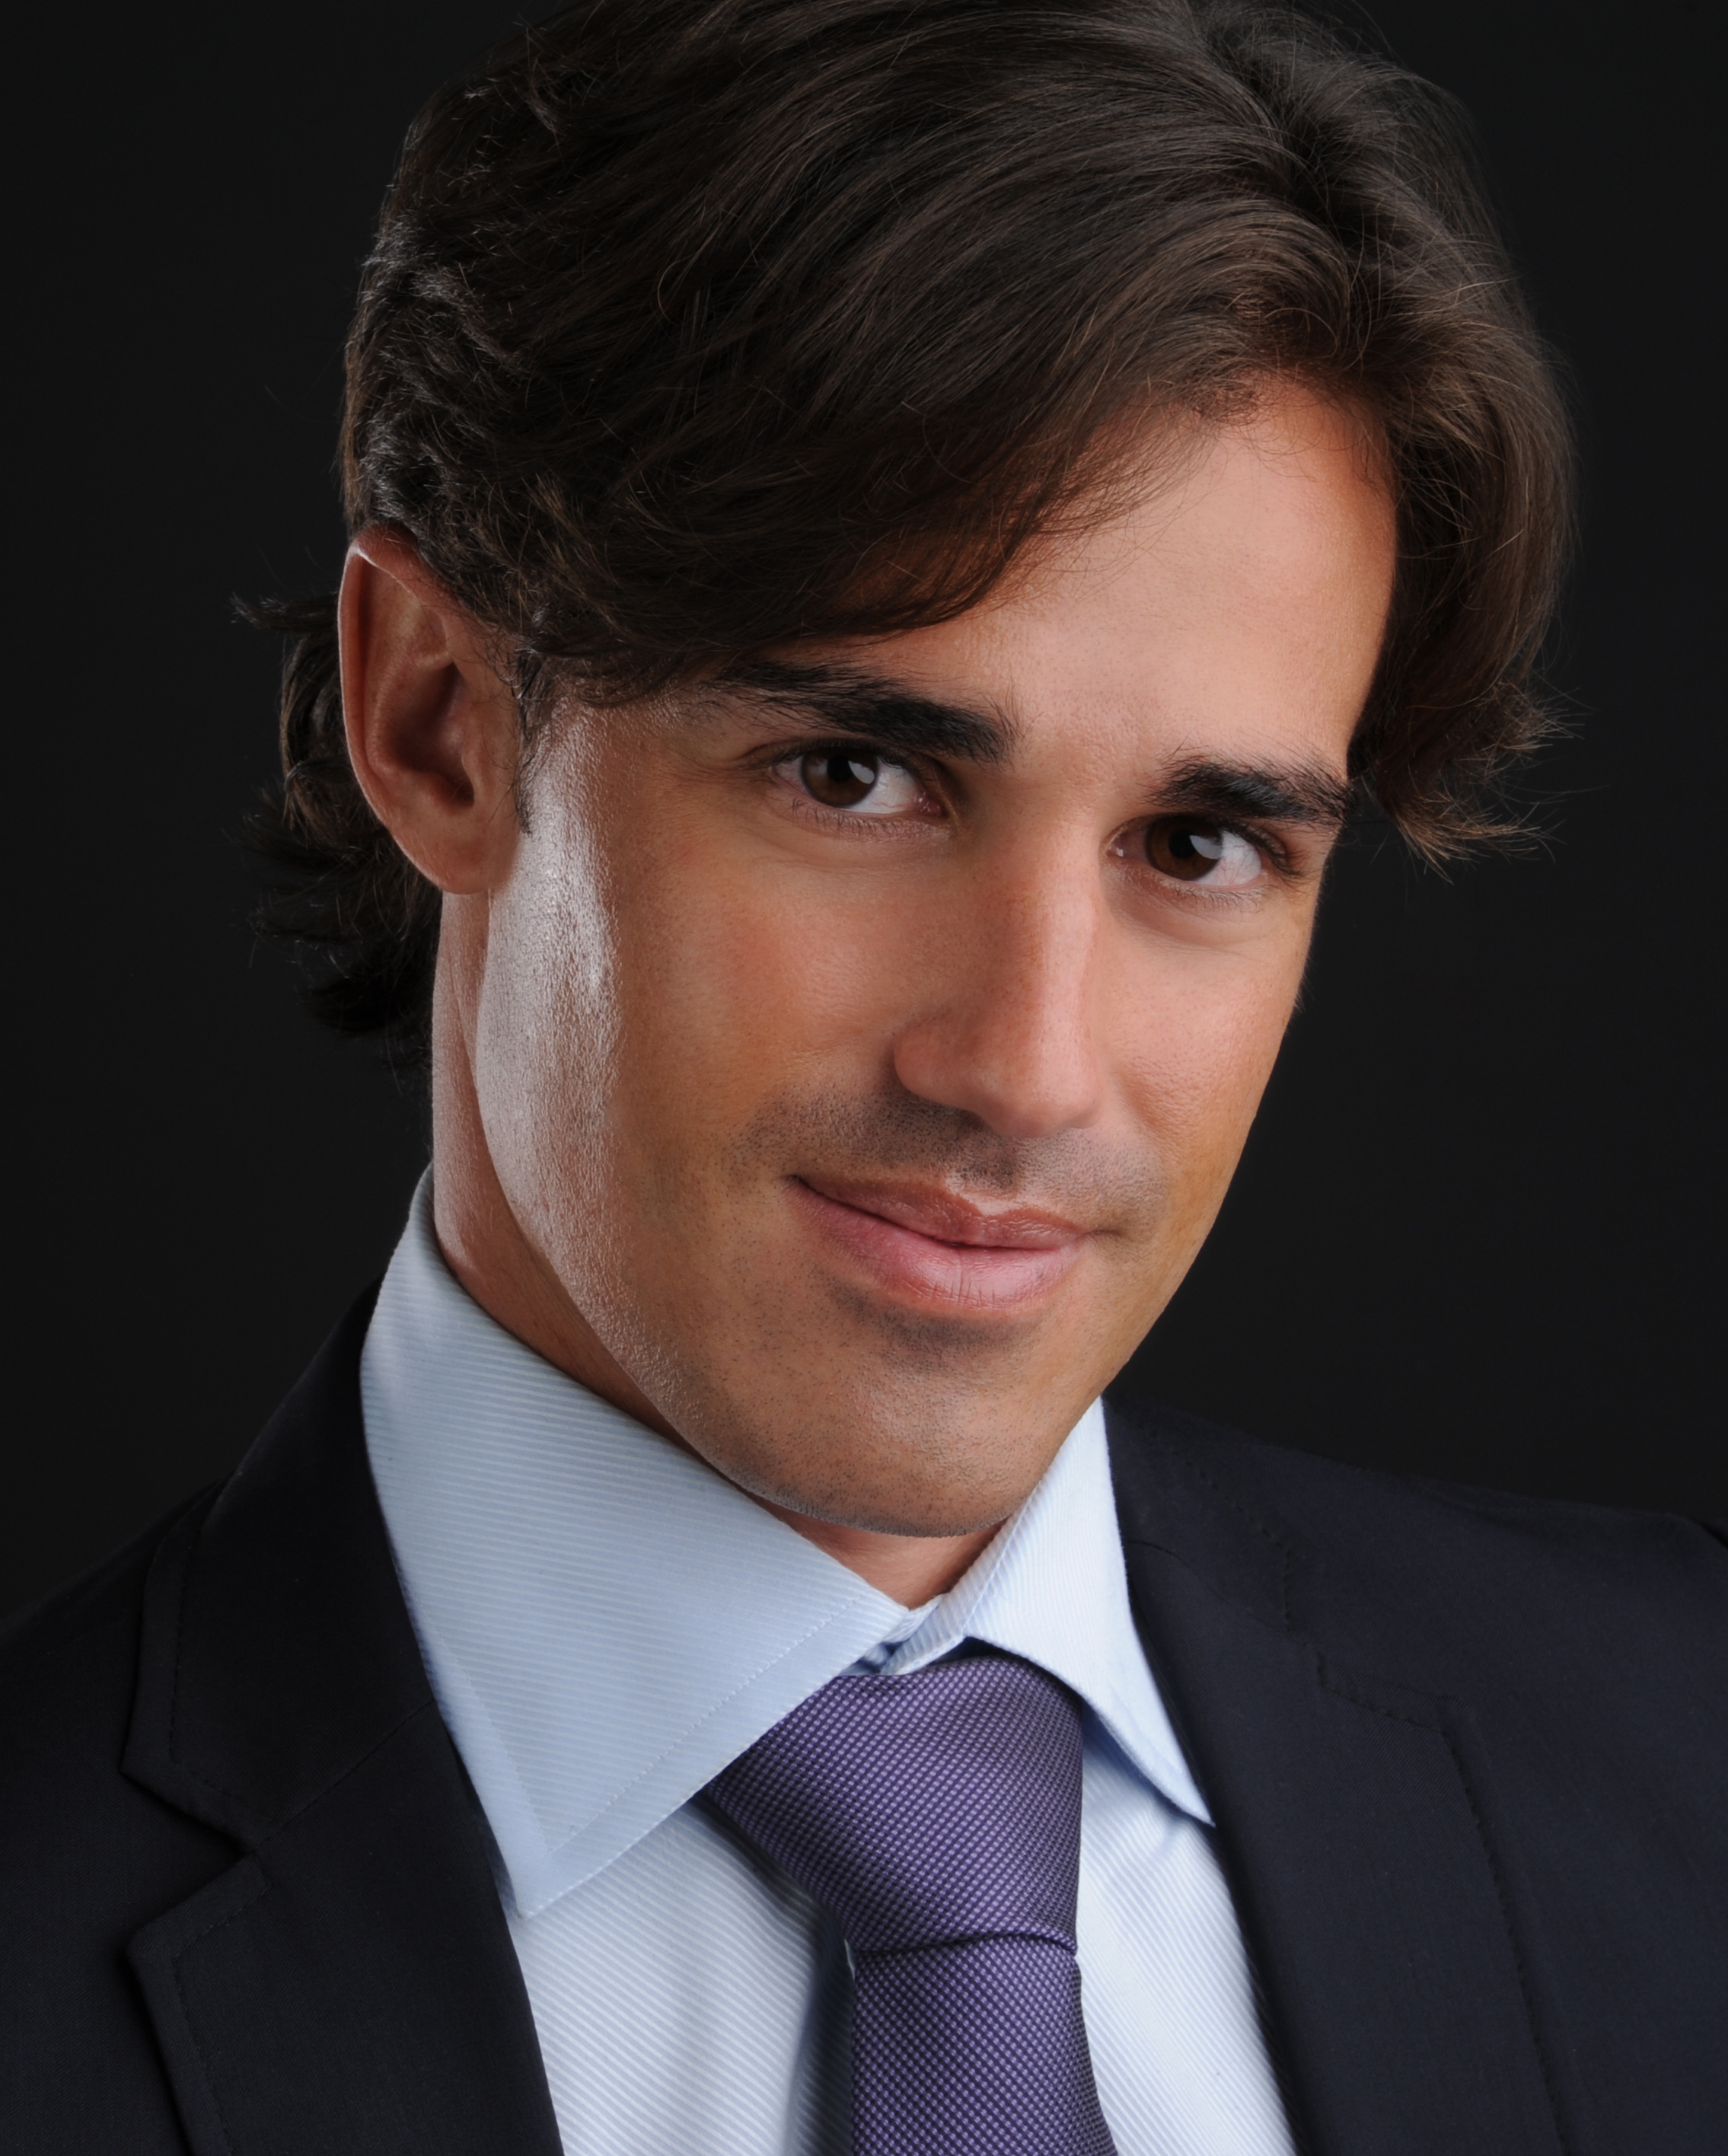 Jorge Padilla, financial advisor Miami FL